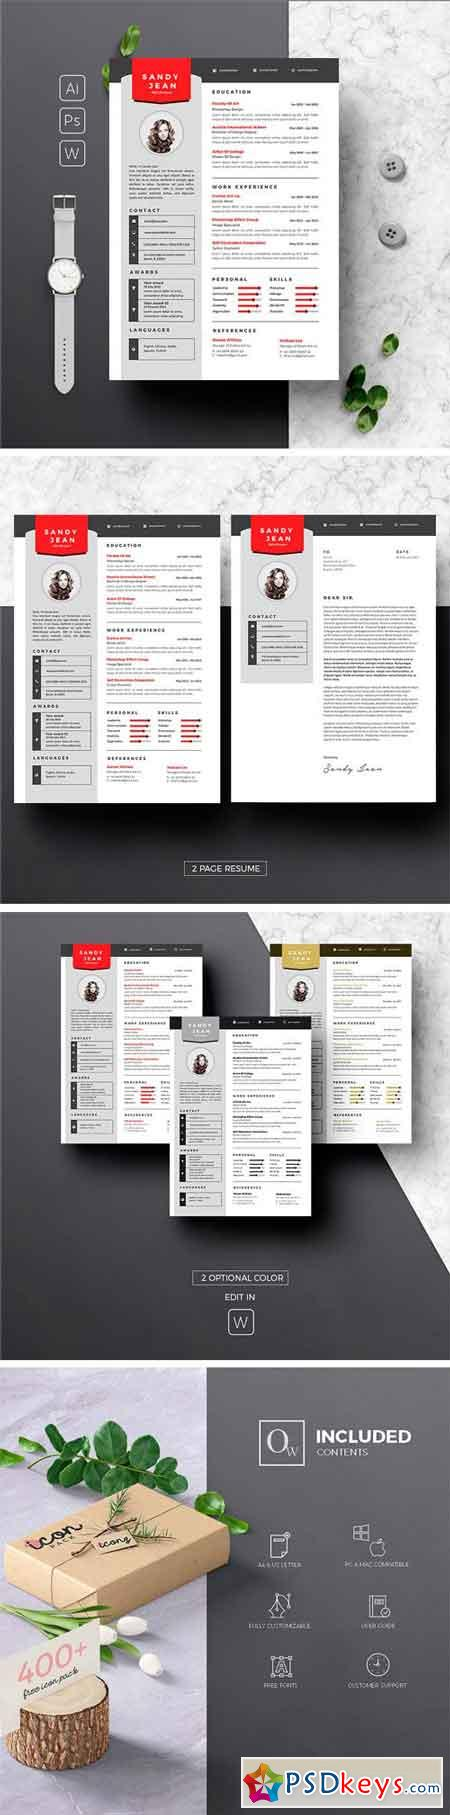 Clean Resume & Cover Letter 1659509